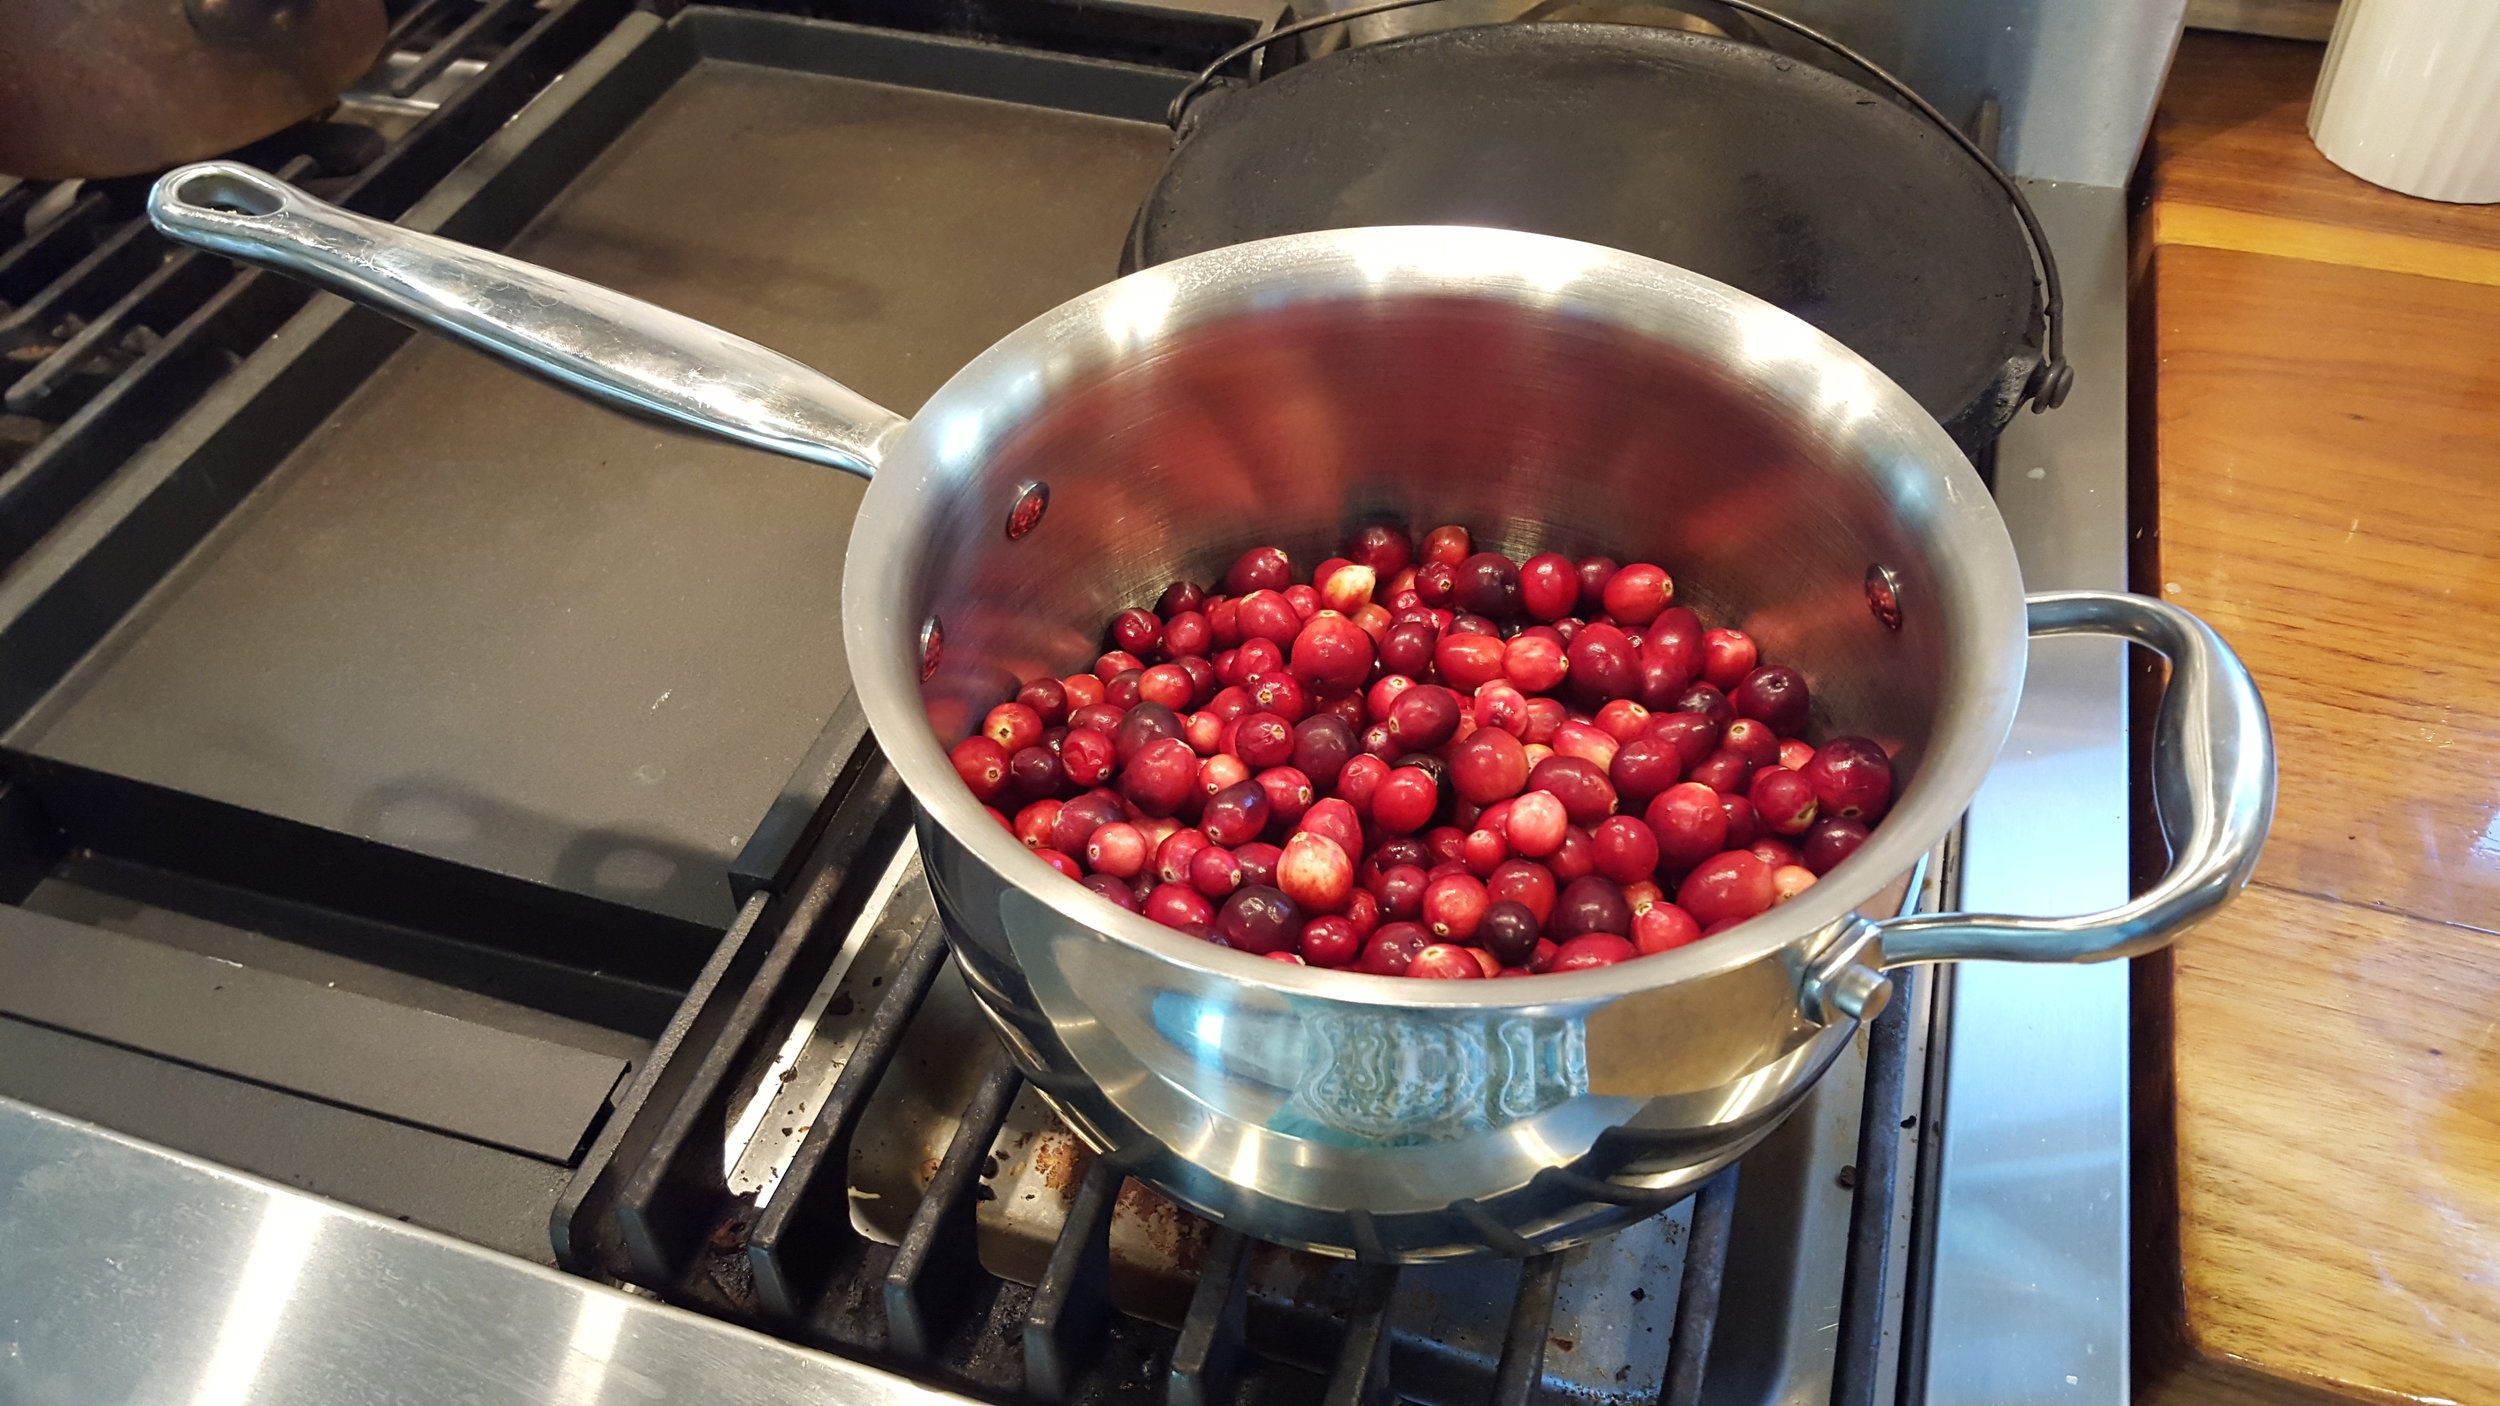 Northwest Pearls: Cranberry Sauce